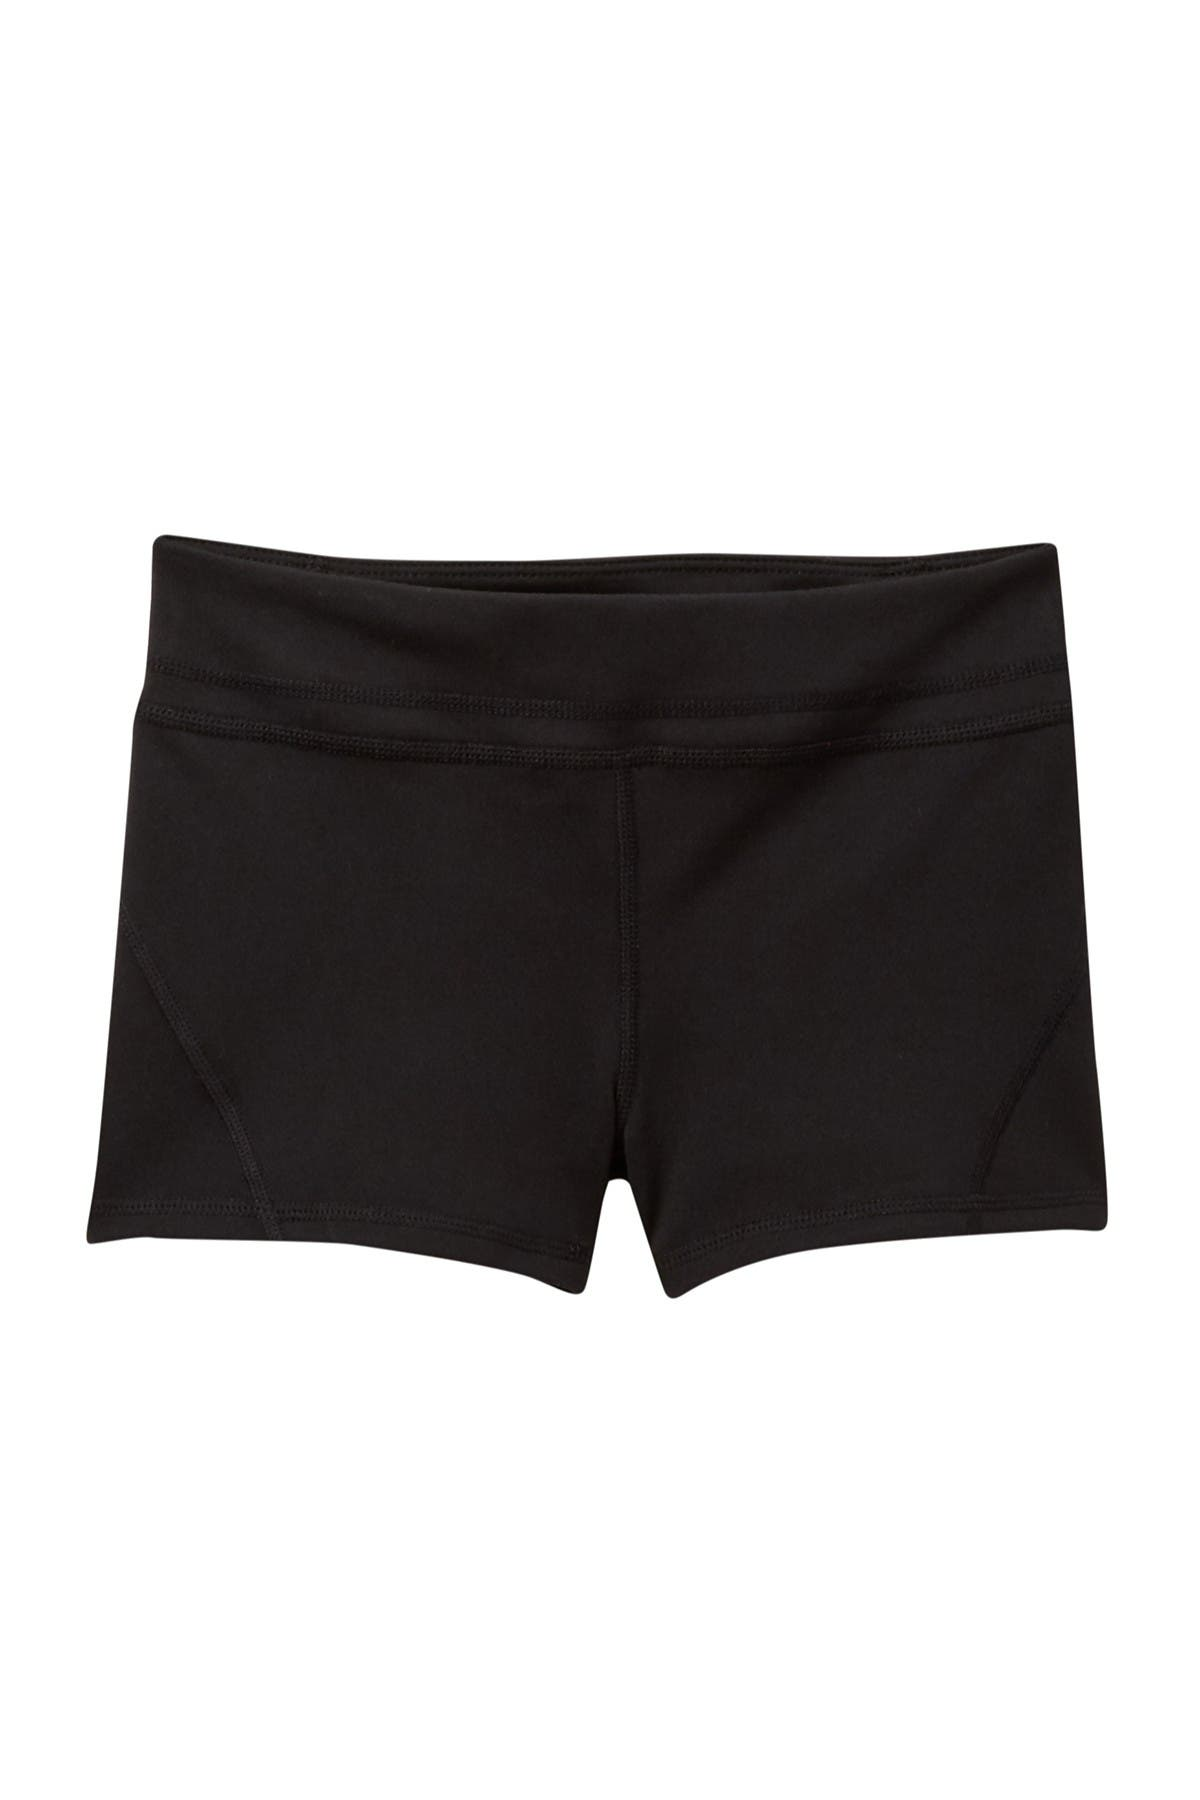 Image of Z by Zella Girl Active Solid Shorts